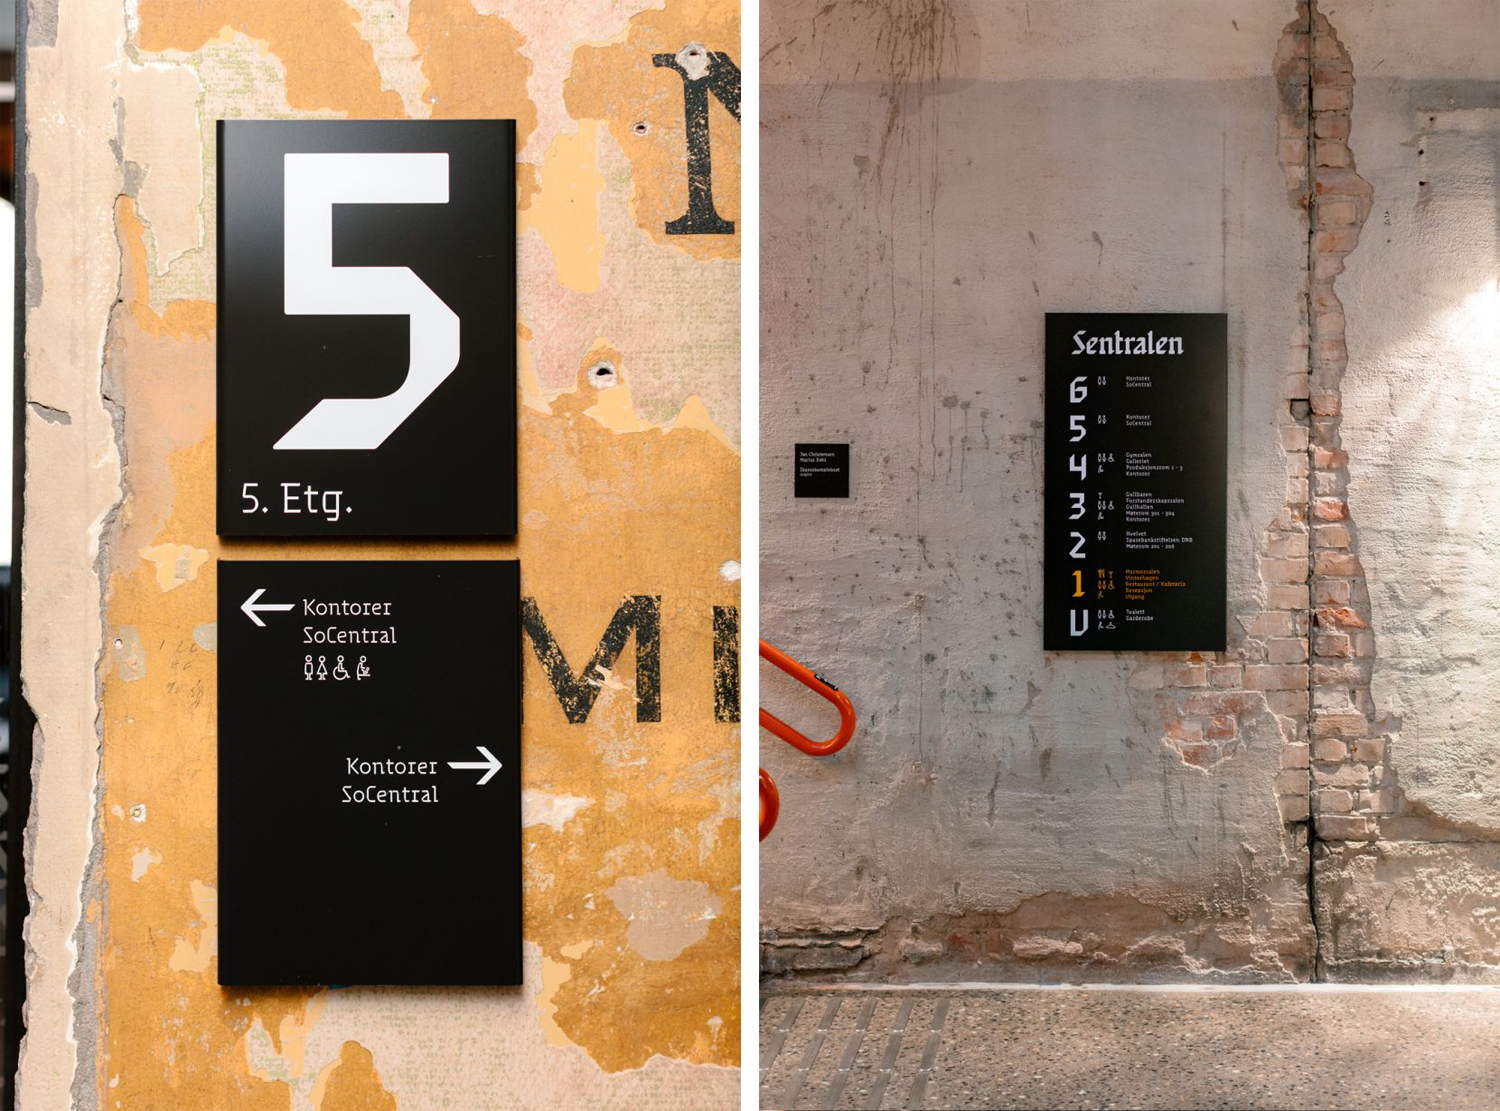 Brand identity and wayfinding for Oslo-based cultural centre and co-working space Sentralen by Metric Design, Norway